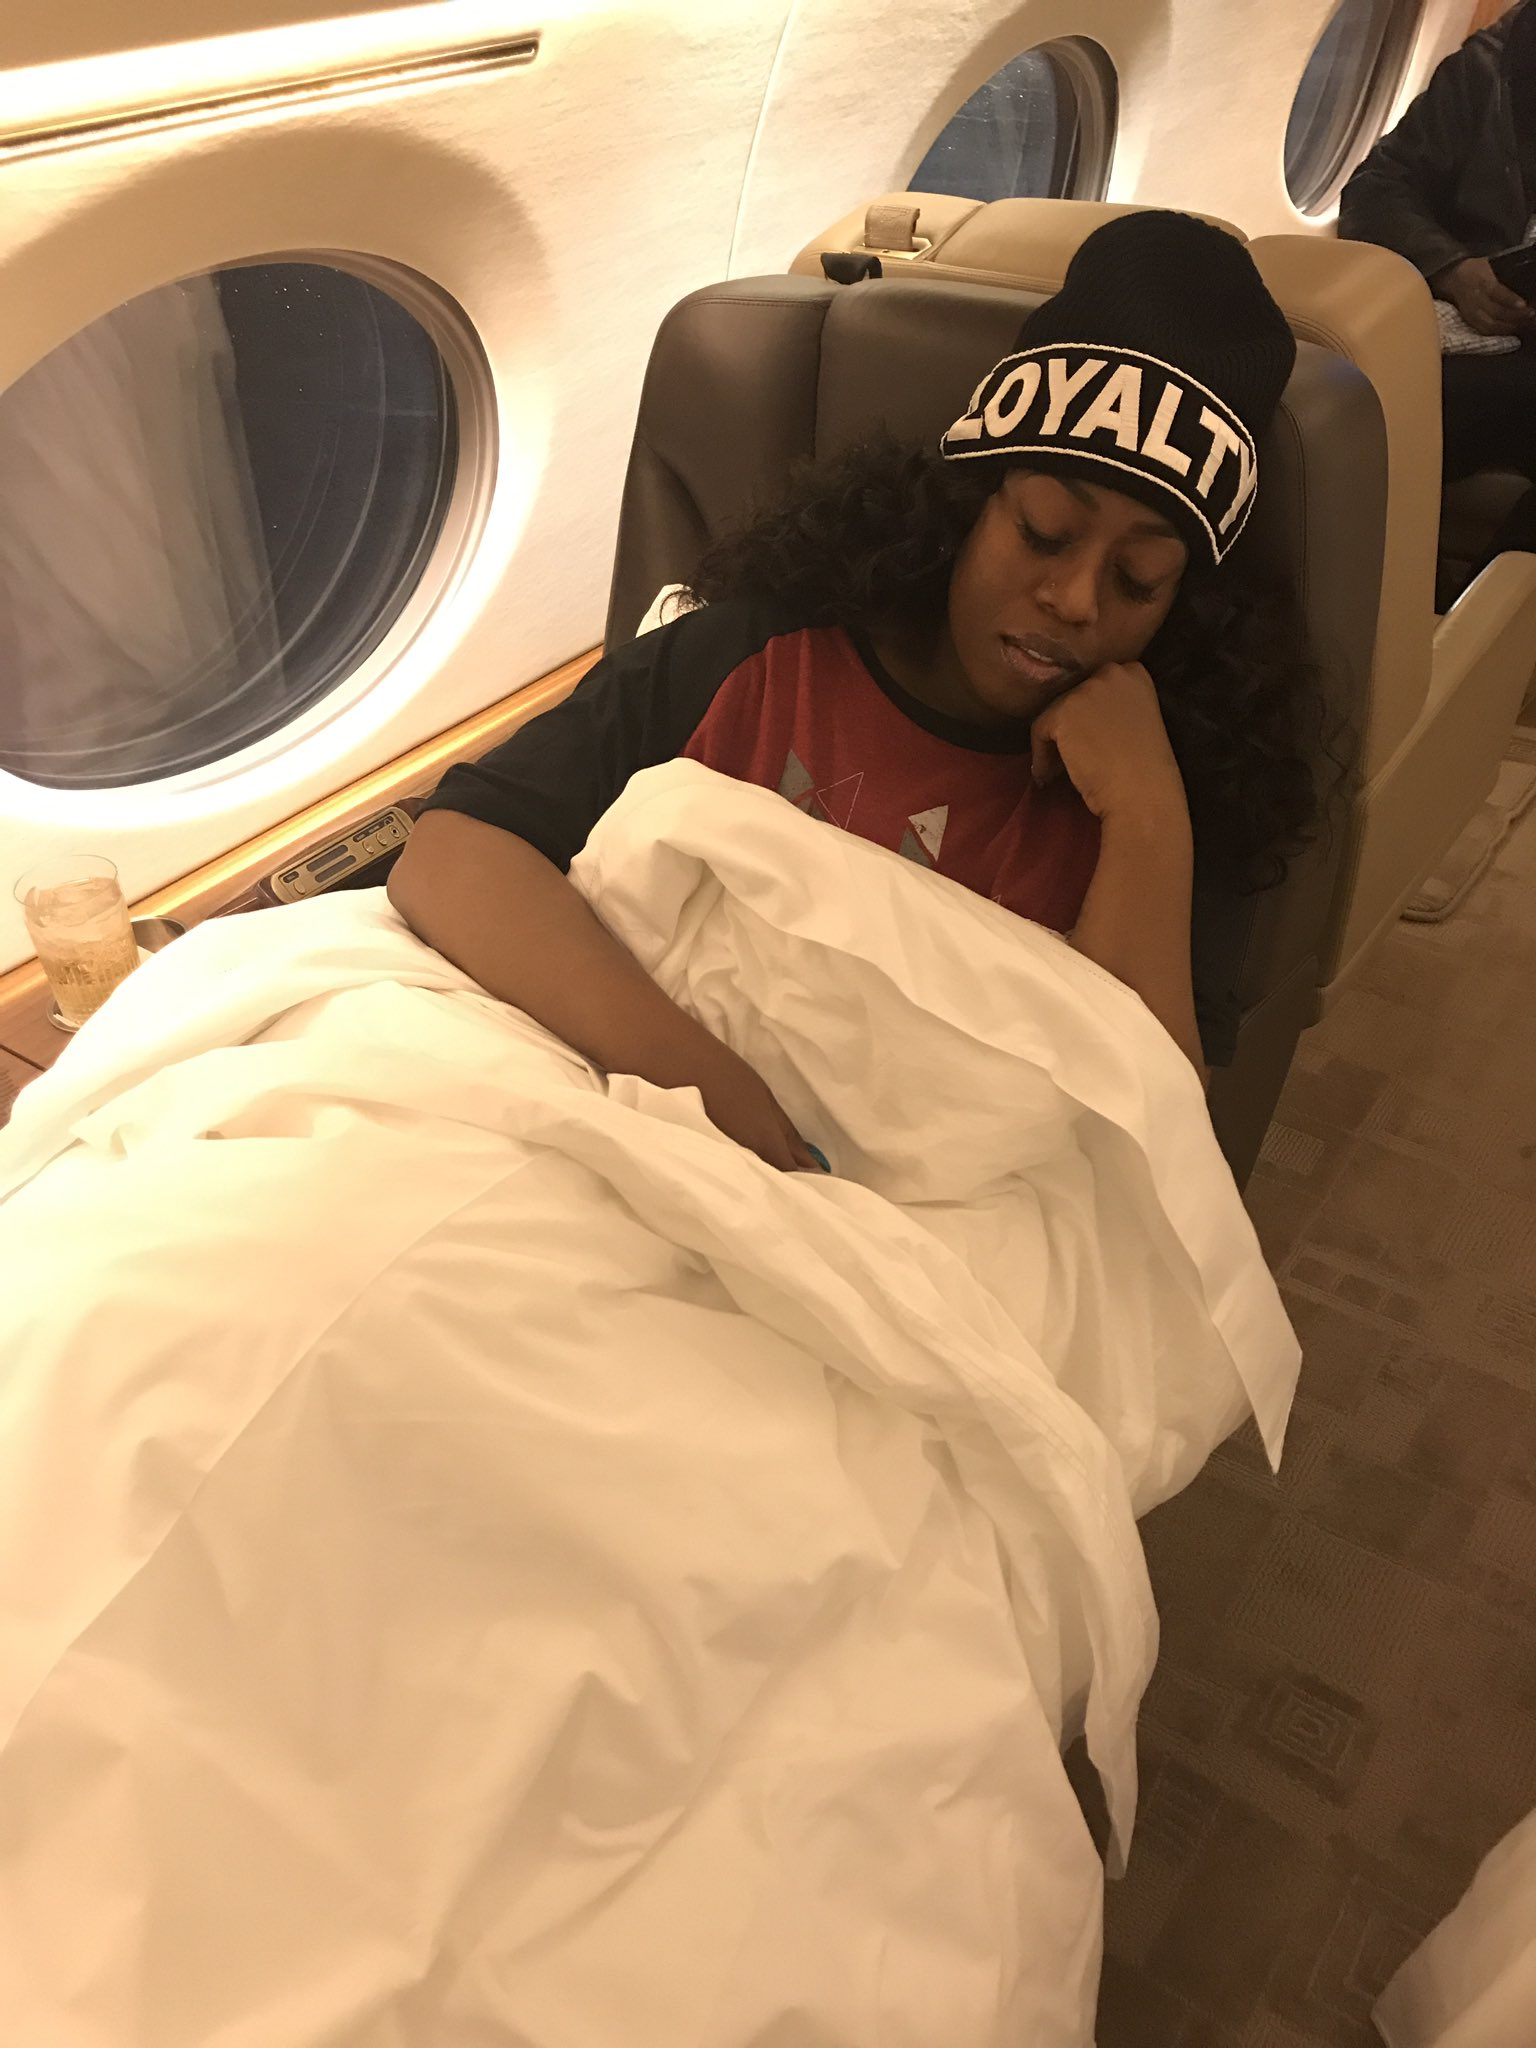 Finally some rest on a 10 hr flight���� https://t.co/Y6T2v4SNfO